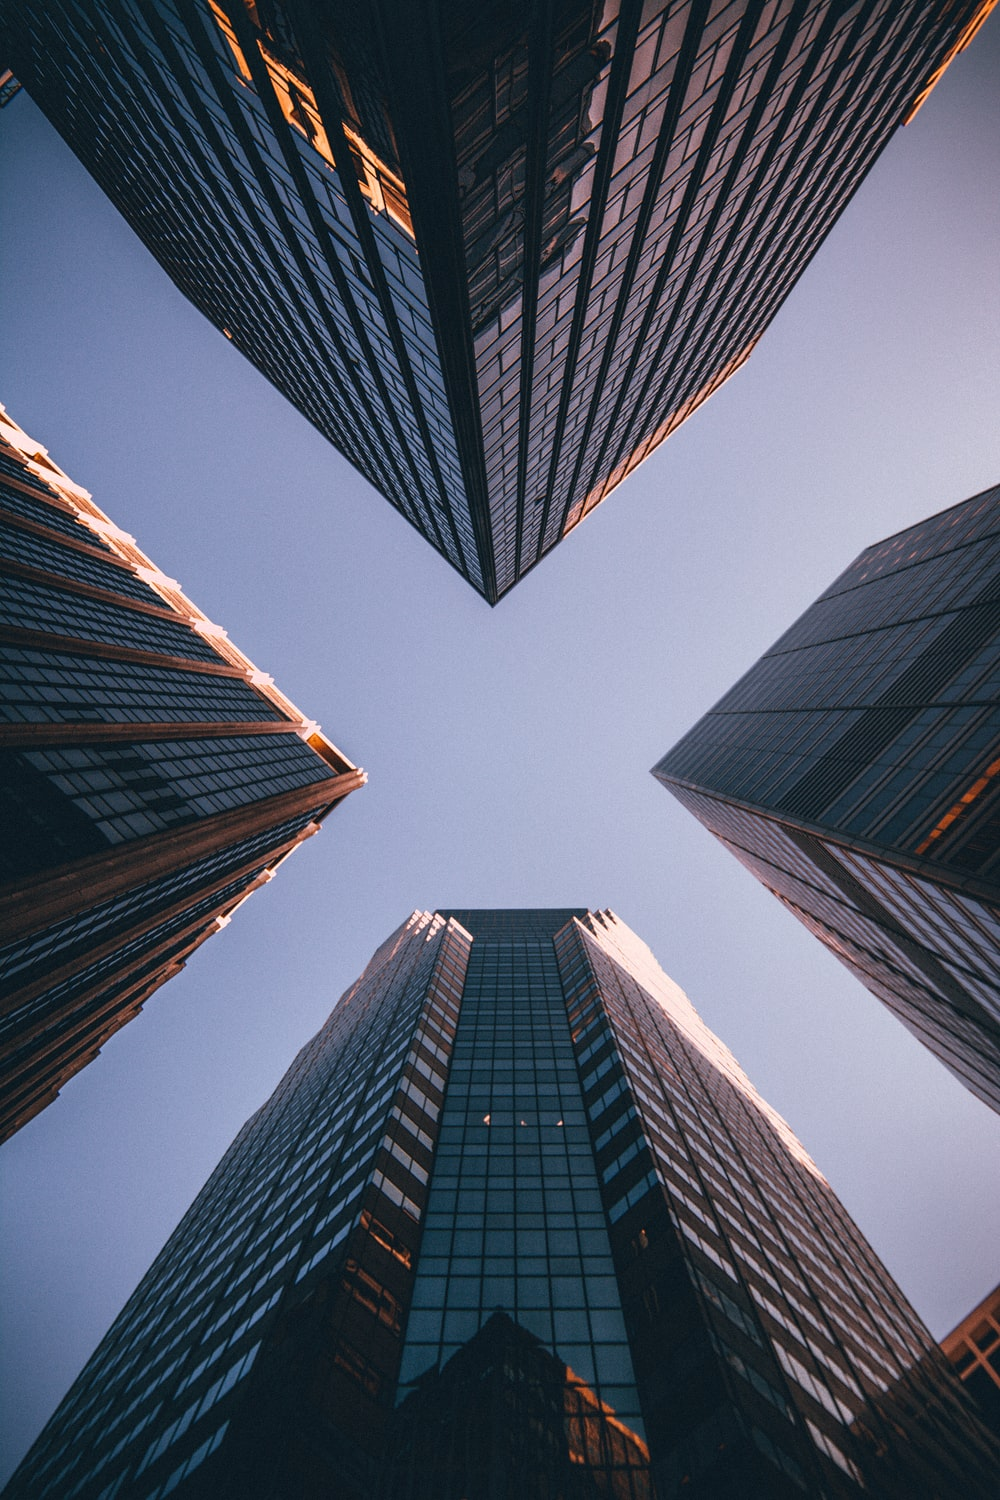 low-angle photography of four high-rise buildings